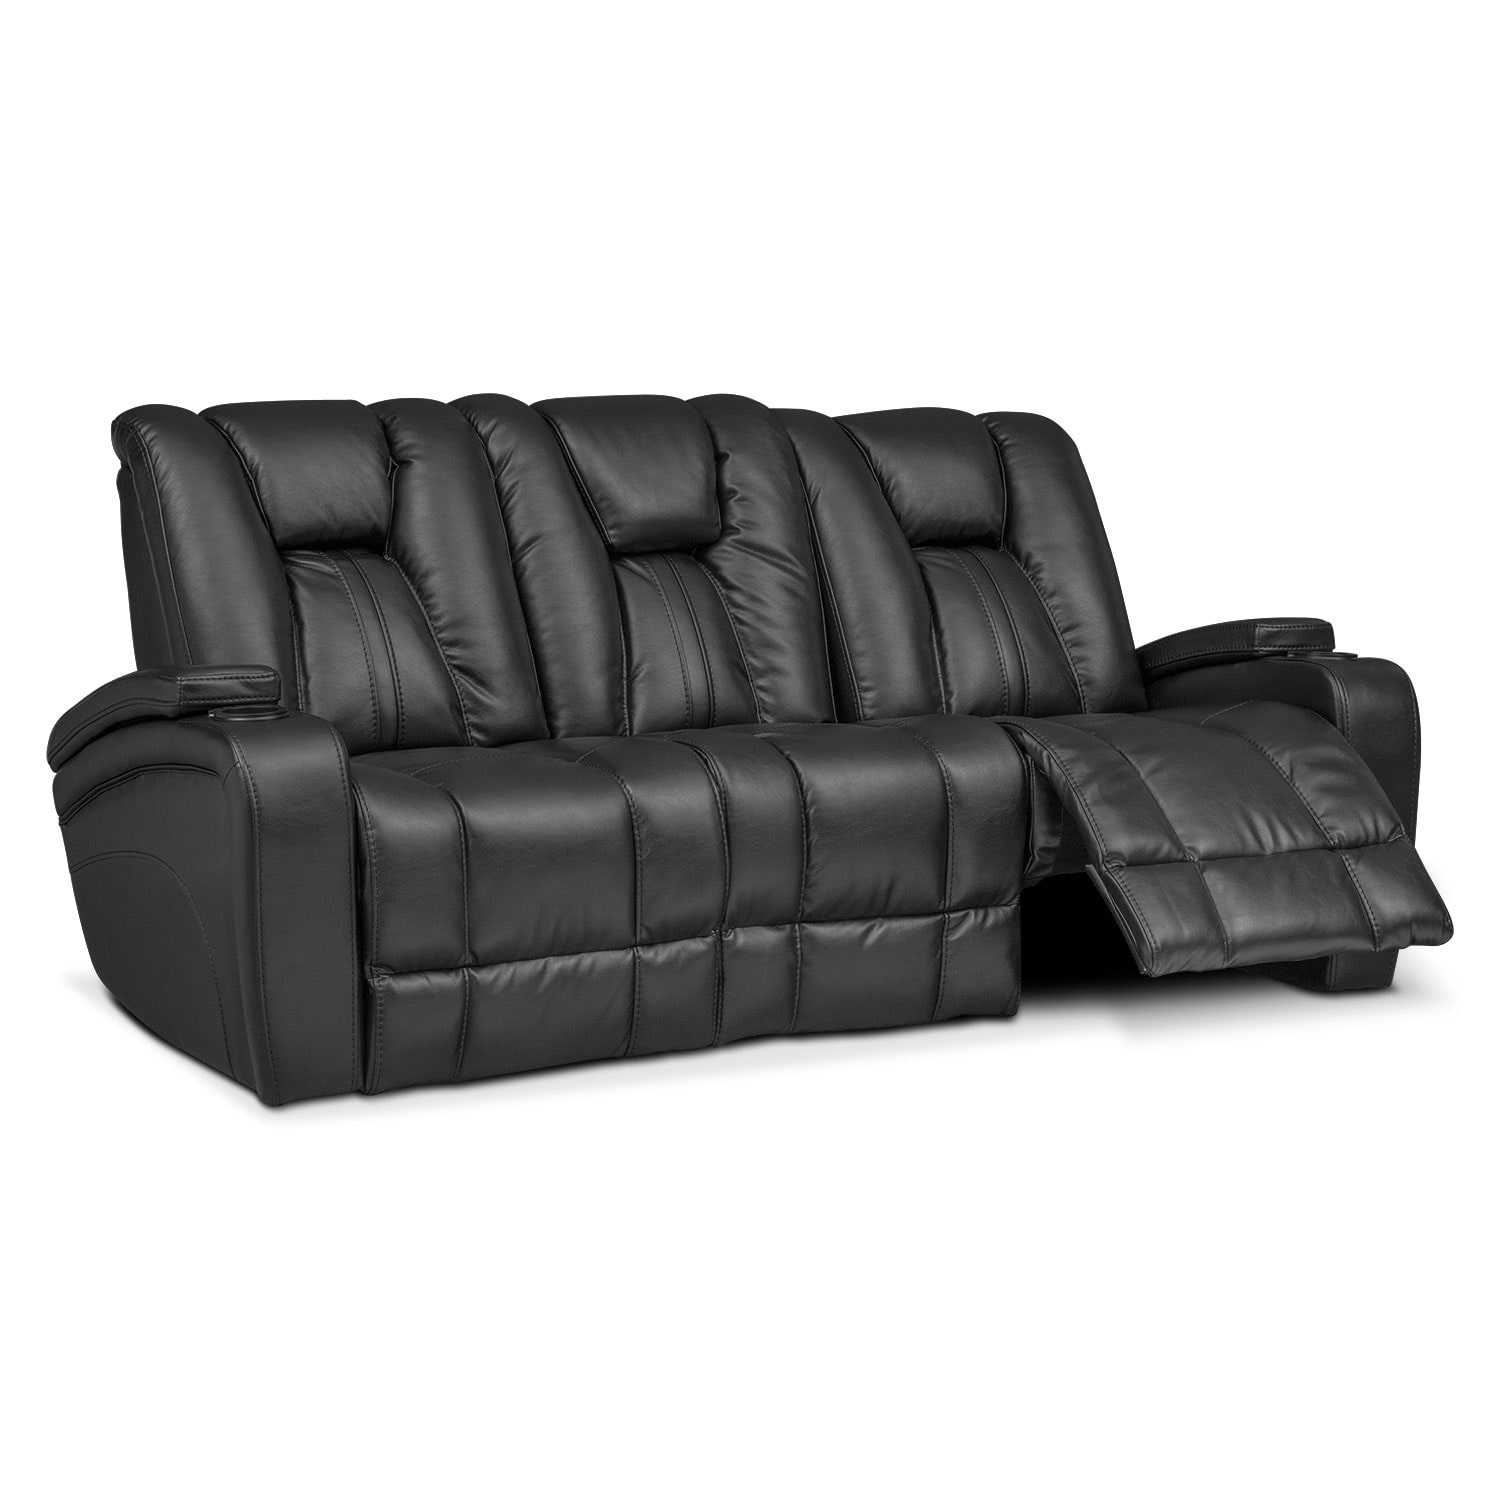 Click to change image. - Pulsar Dual Power Reclining Sofa - Black Value City Furniture